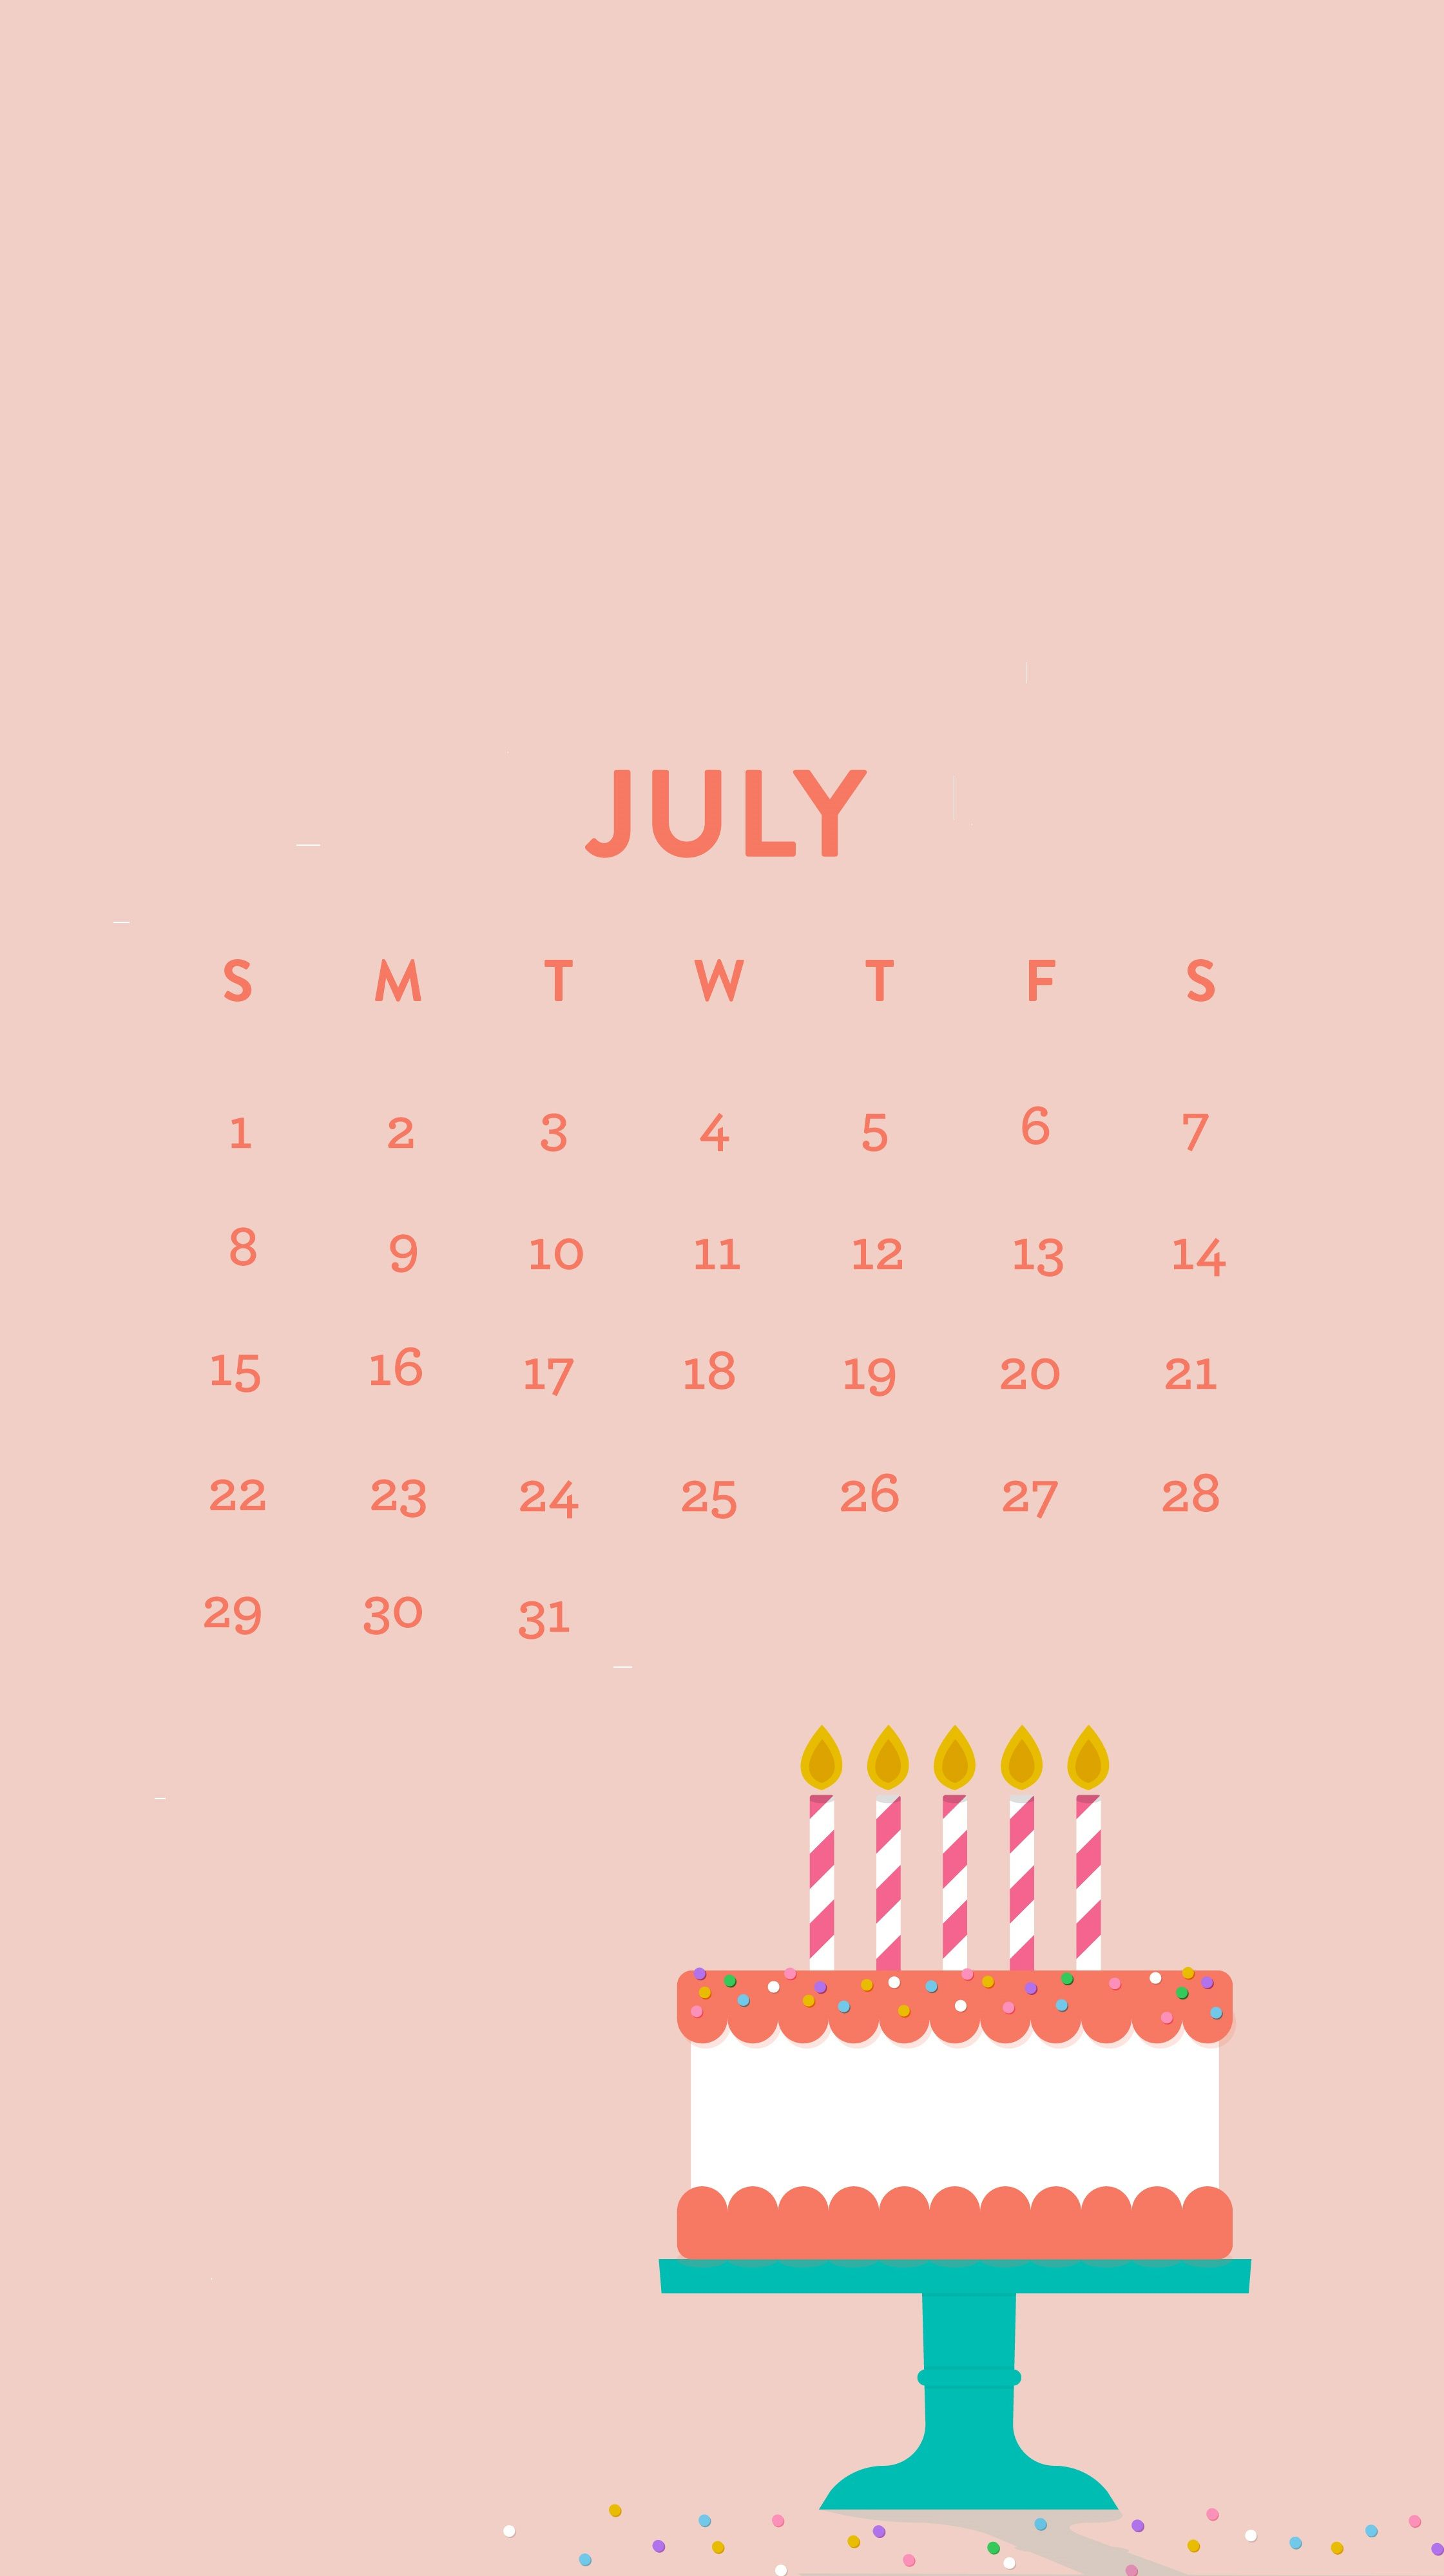 Free July 2018 iPhone Calendar Wallpapers | Calendar 2018 | Calendar wallpaper, Calendar, Free ...